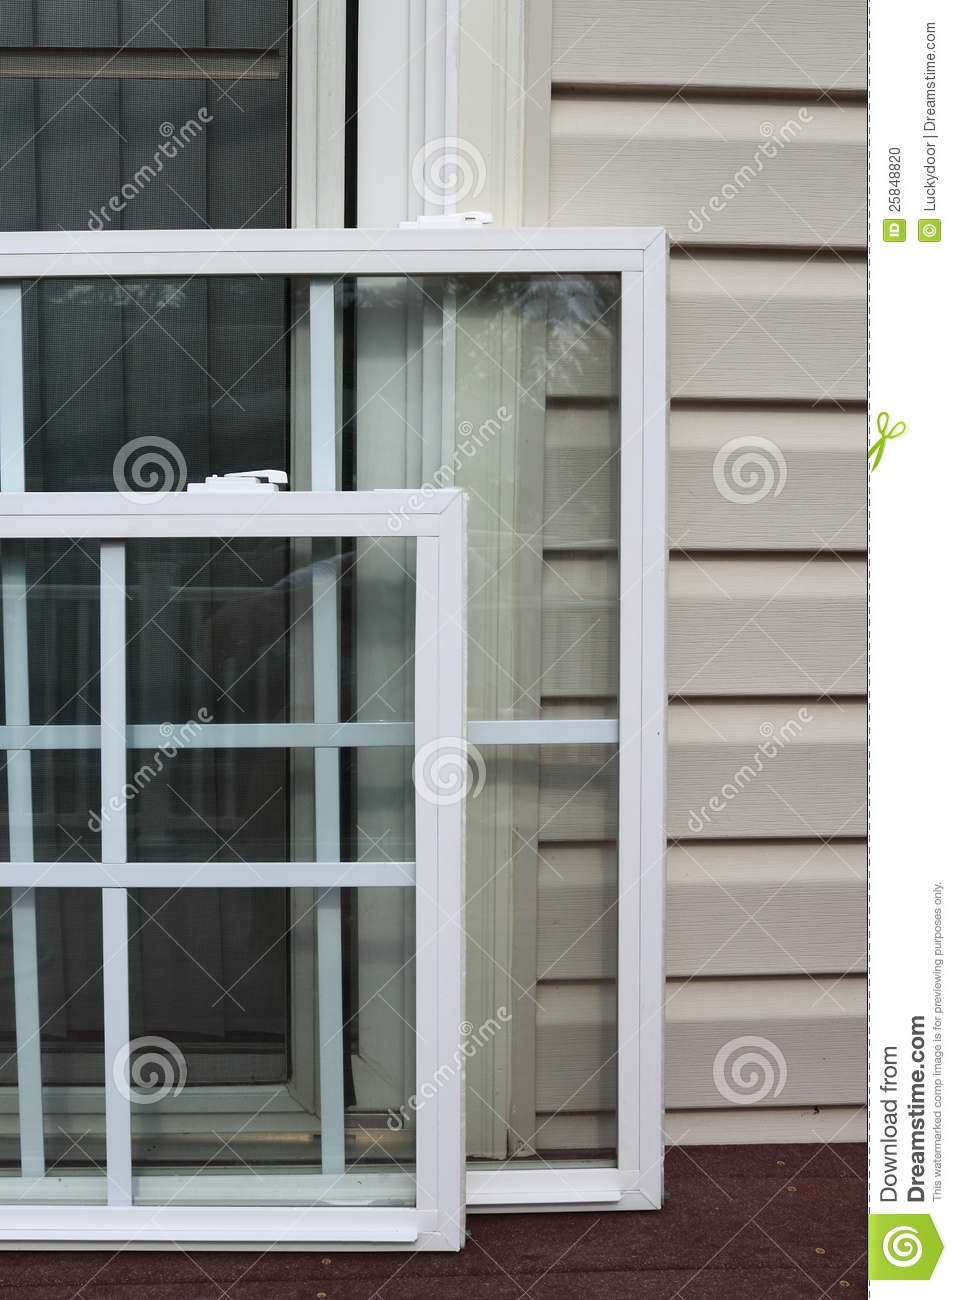 Energy efficient windows stock photo image 25848820 for Energy efficient windows